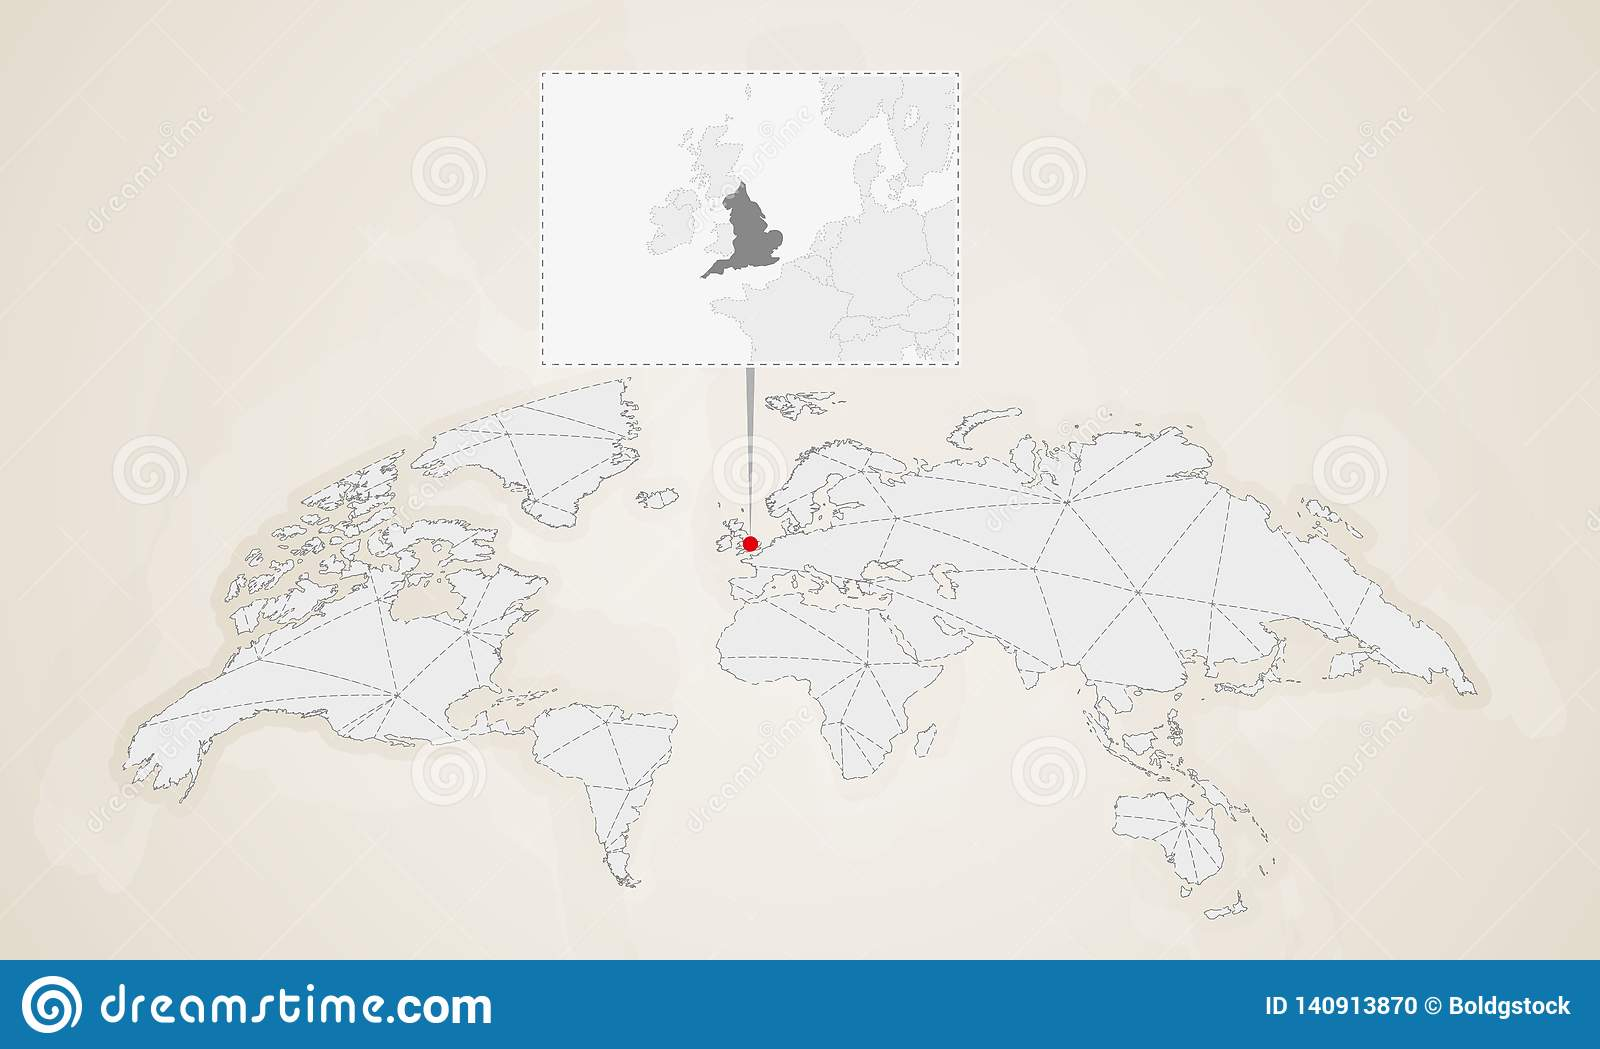 Map Of England Countries.Map Of England With Neighbor Countries Pinned On World Map Stock